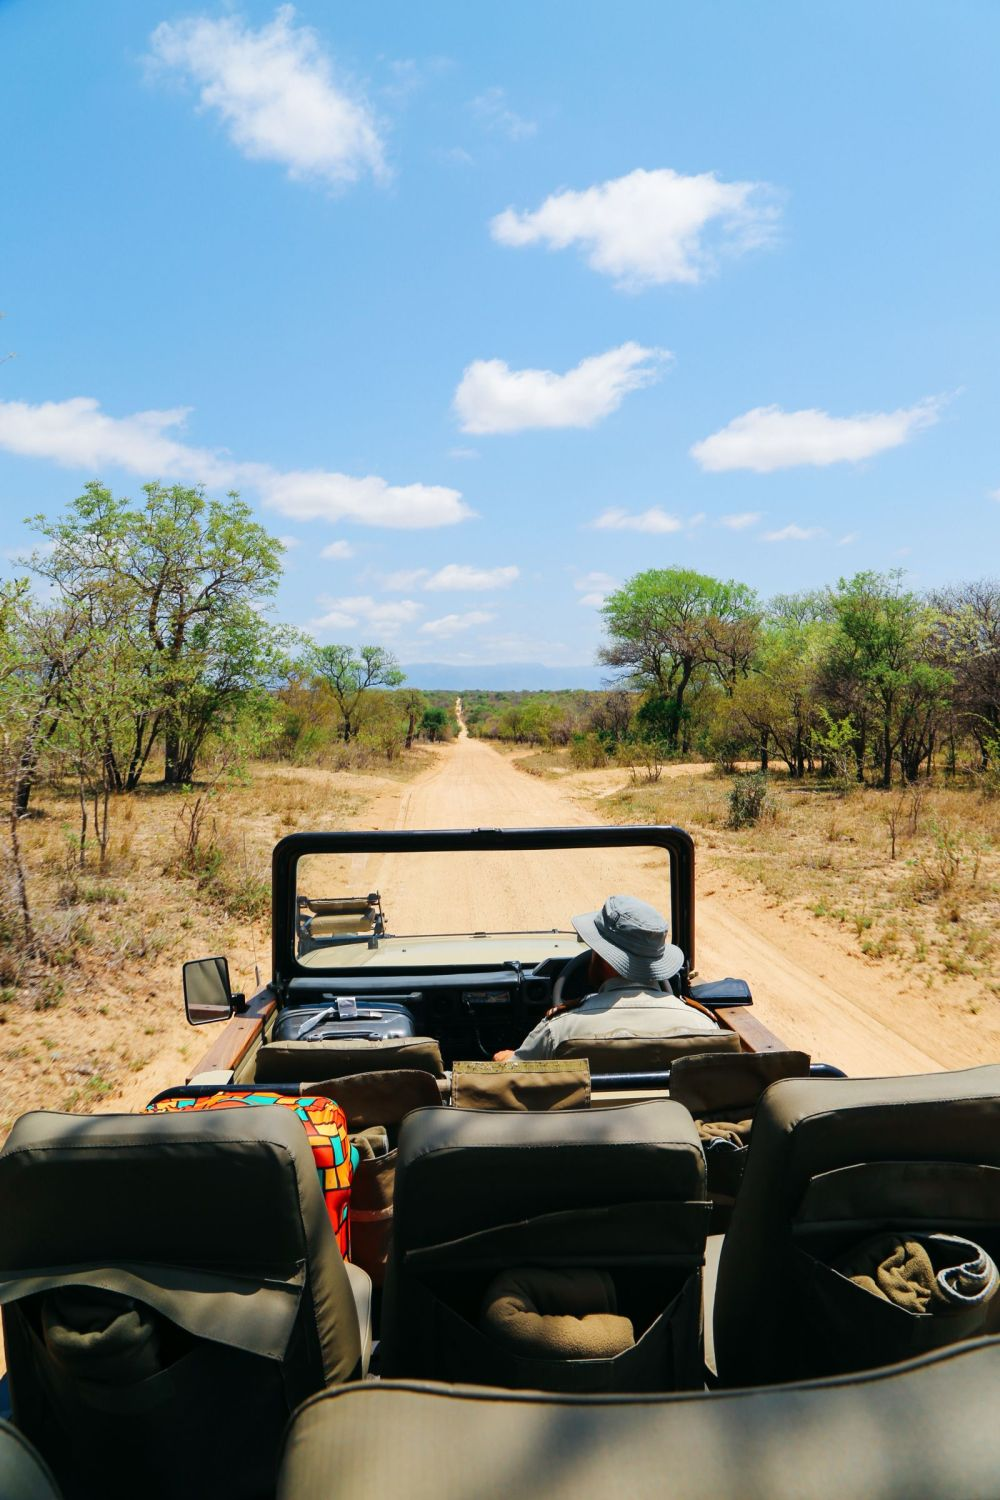 Arriving On Safari In South Africa... (Definitely Not Your Average Airport Transfer!) (16)